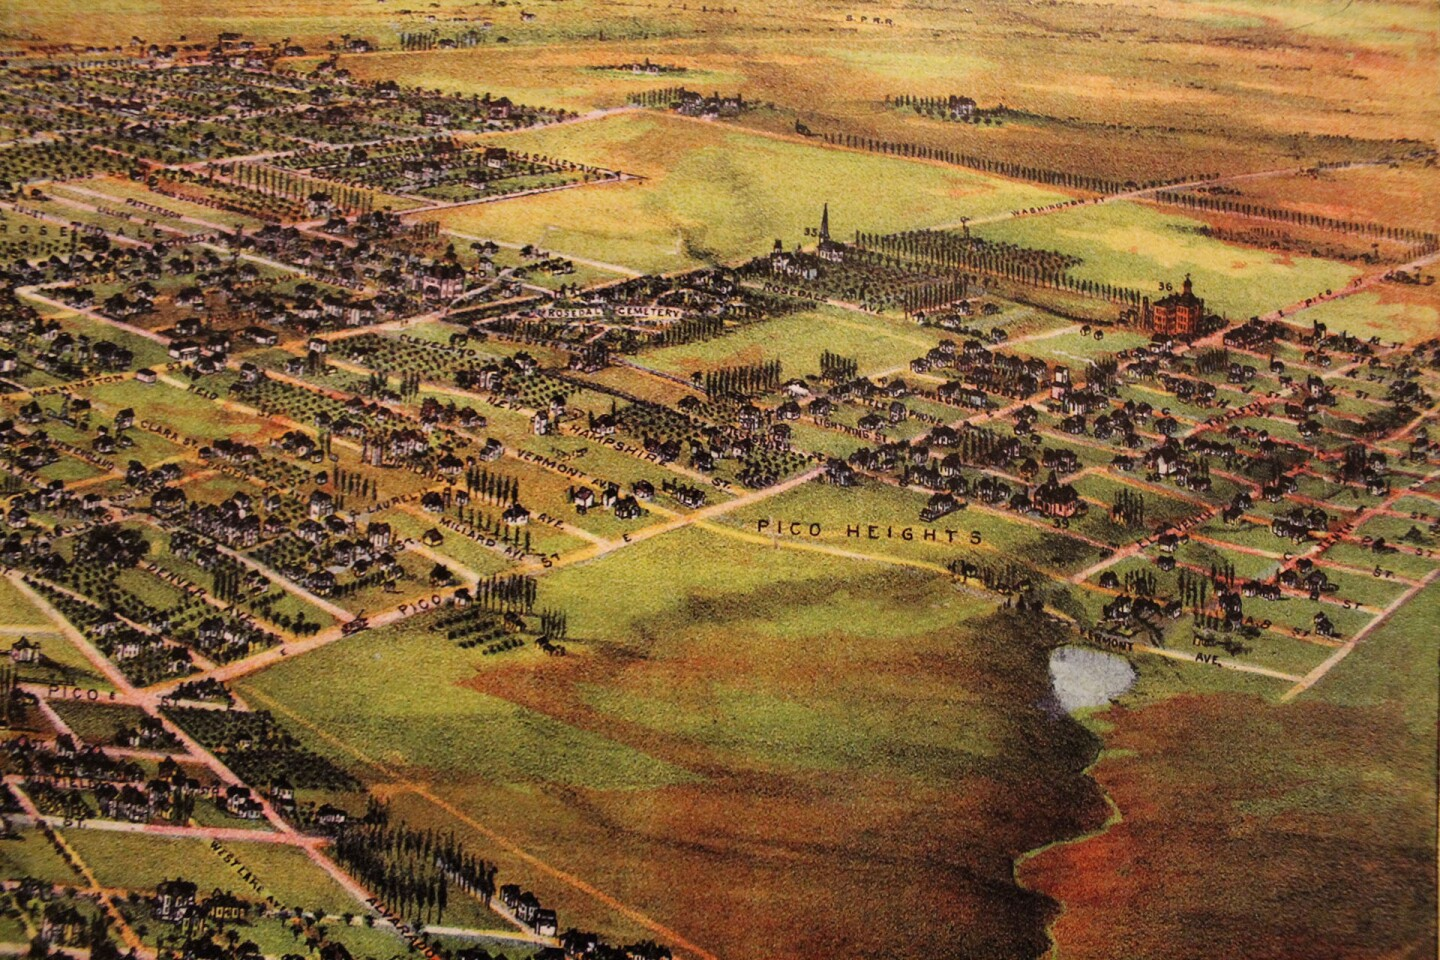 Pico Heights on an 1894 birdseye city view